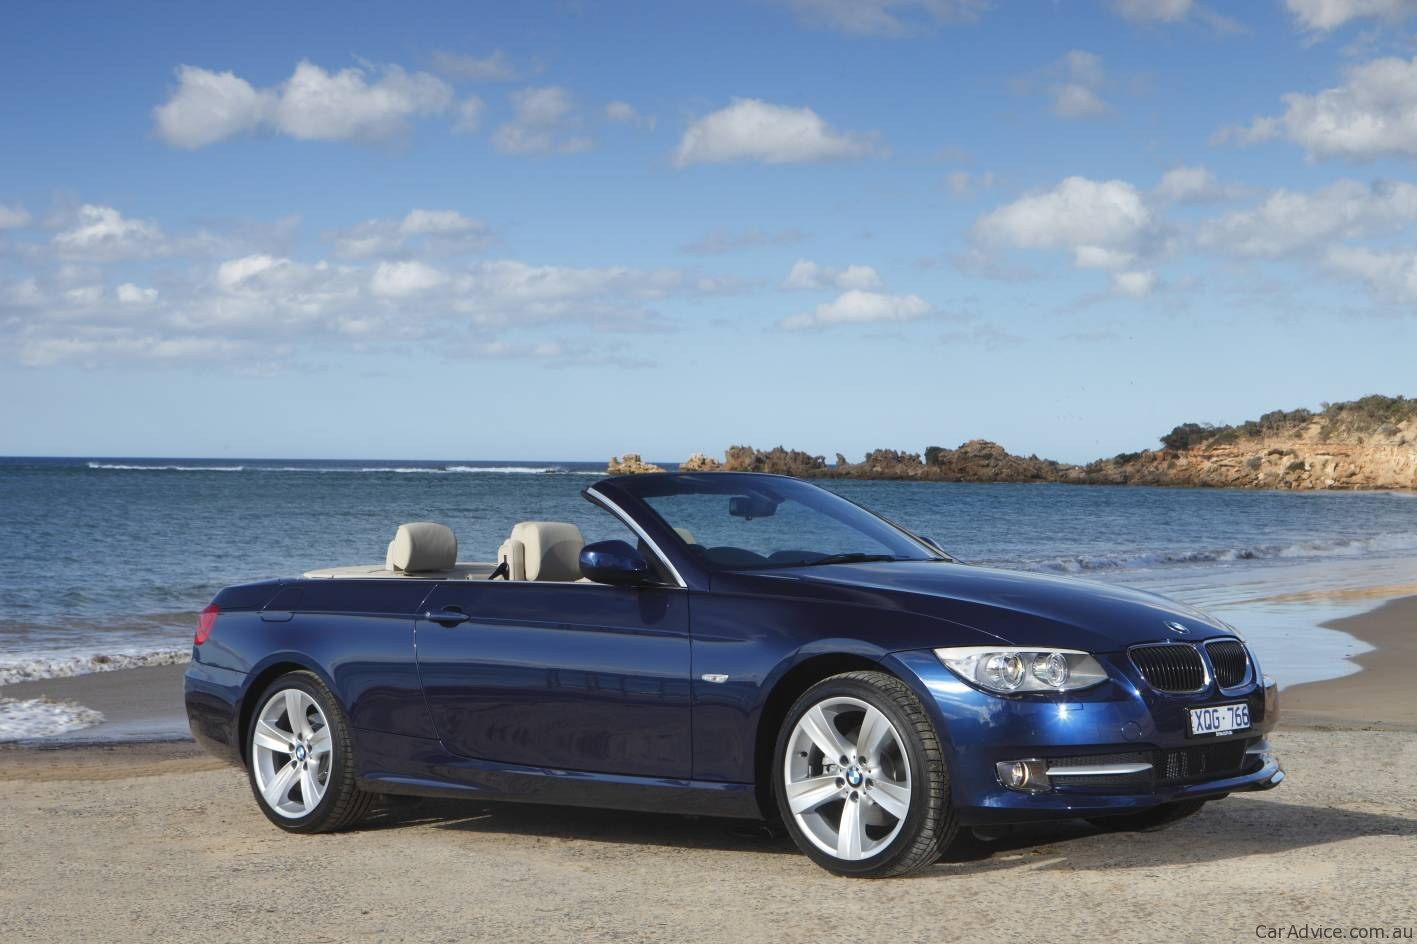 Bmw 335i Convertible >> BMW 3 Series Coupe & Convertible Review - photos | CarAdvice